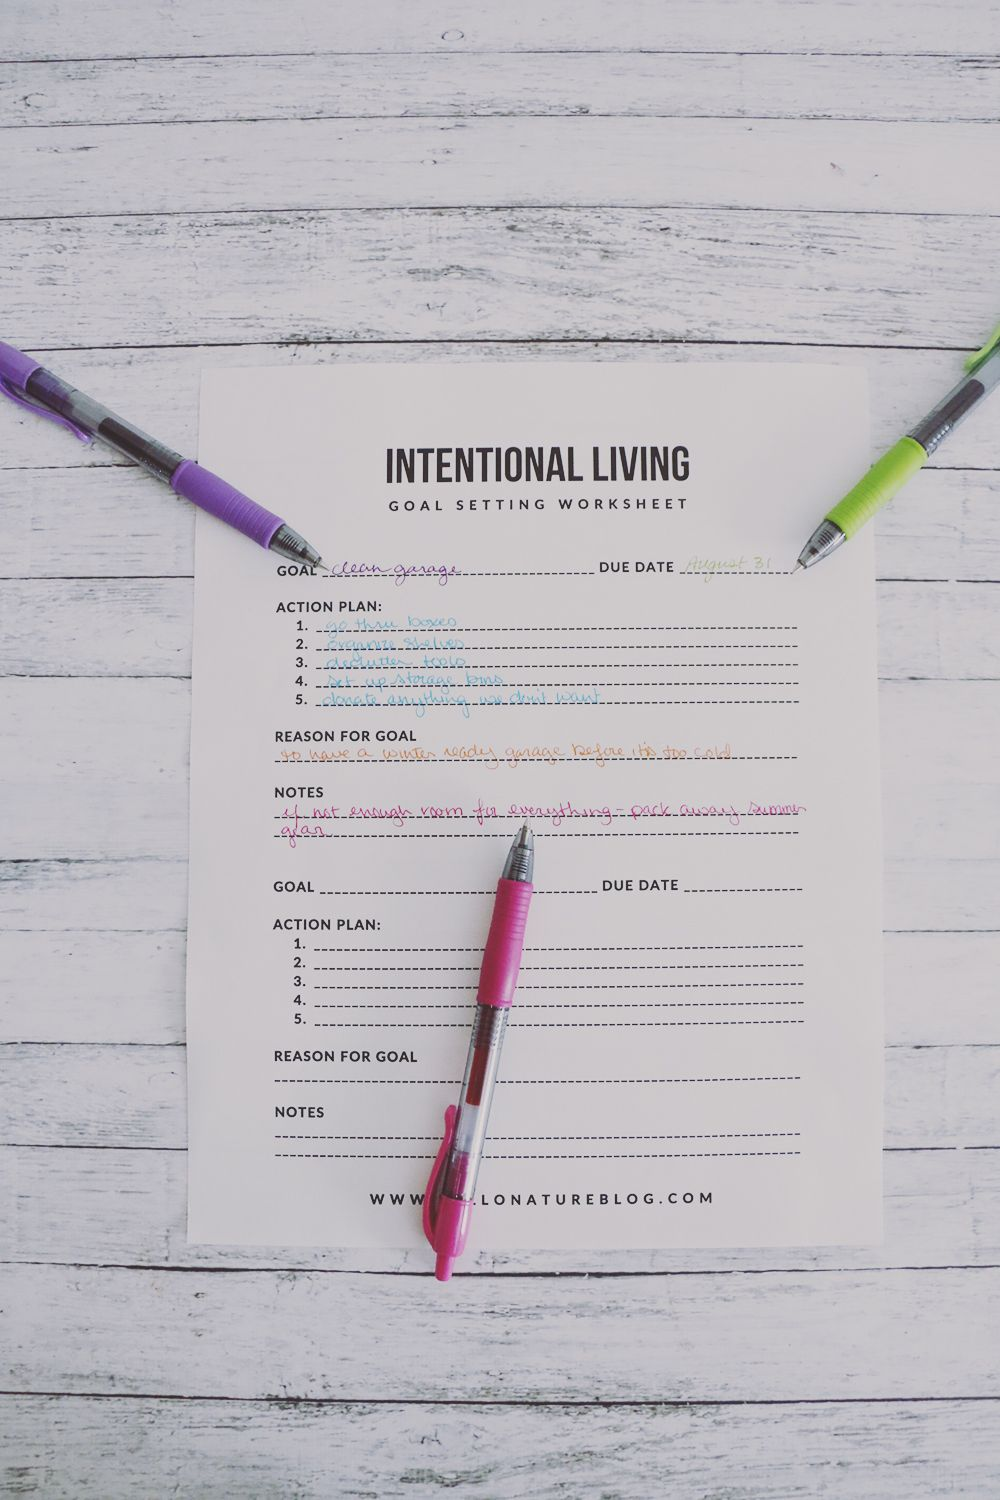 Intentional Living Goal Setting Worksheet Printable  Goal Setting